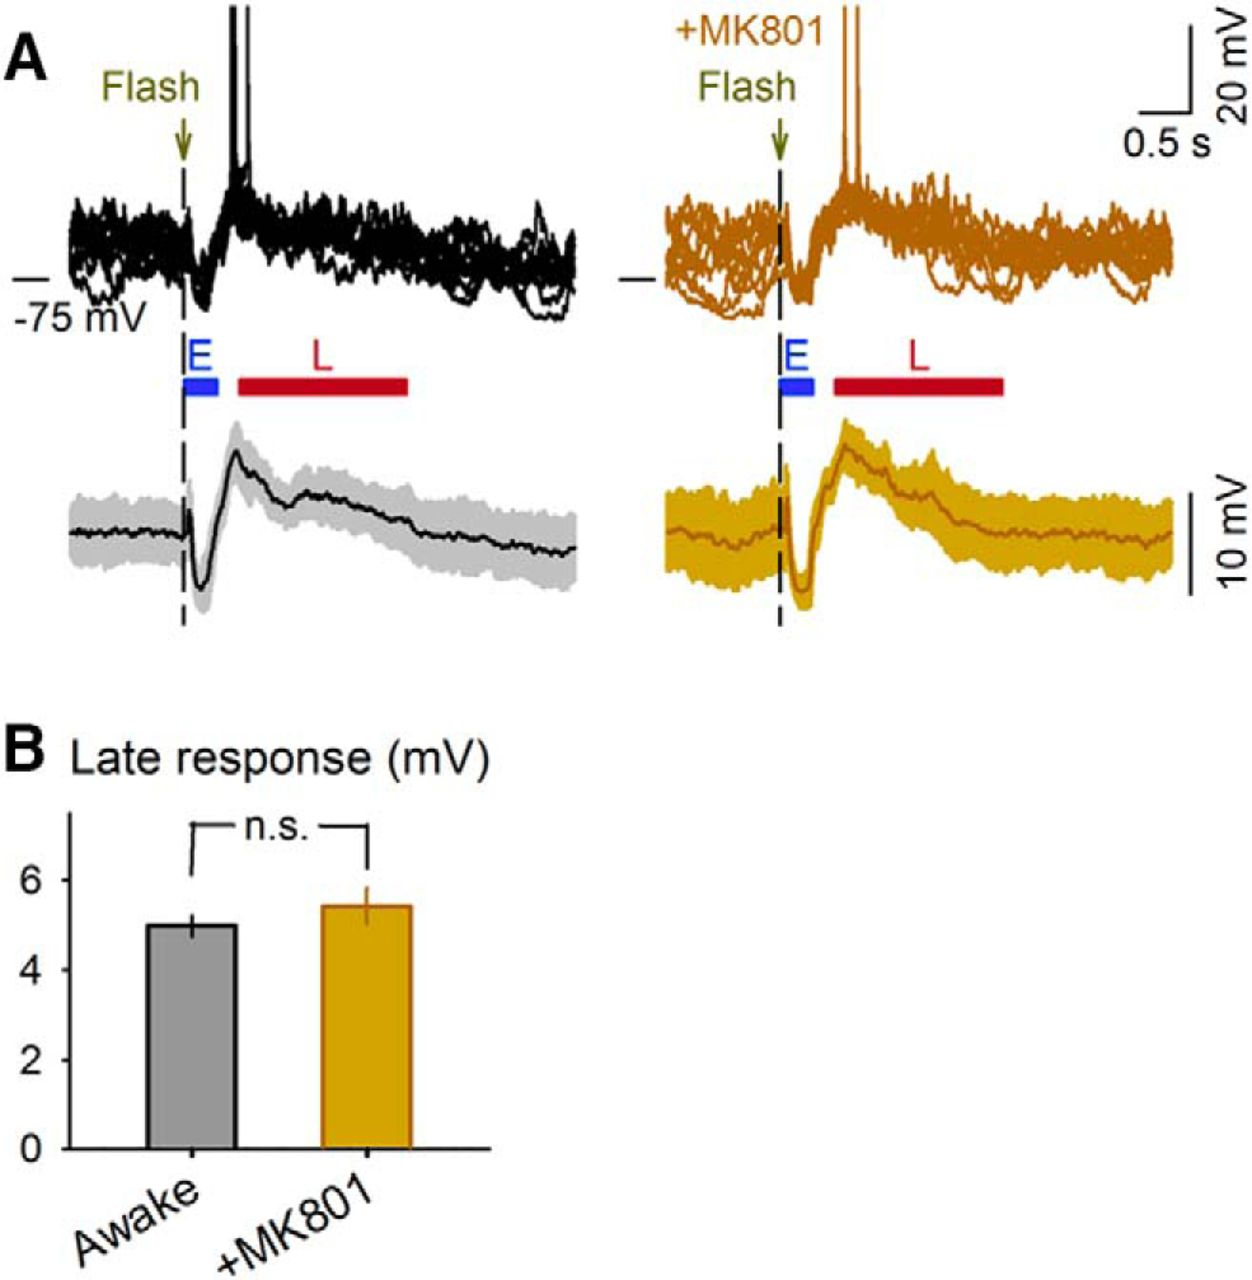 Flashing Lights Induce Prolonged Distortions In Visual Cortical This Flash Circuit Is A Typical Camera Download Figure